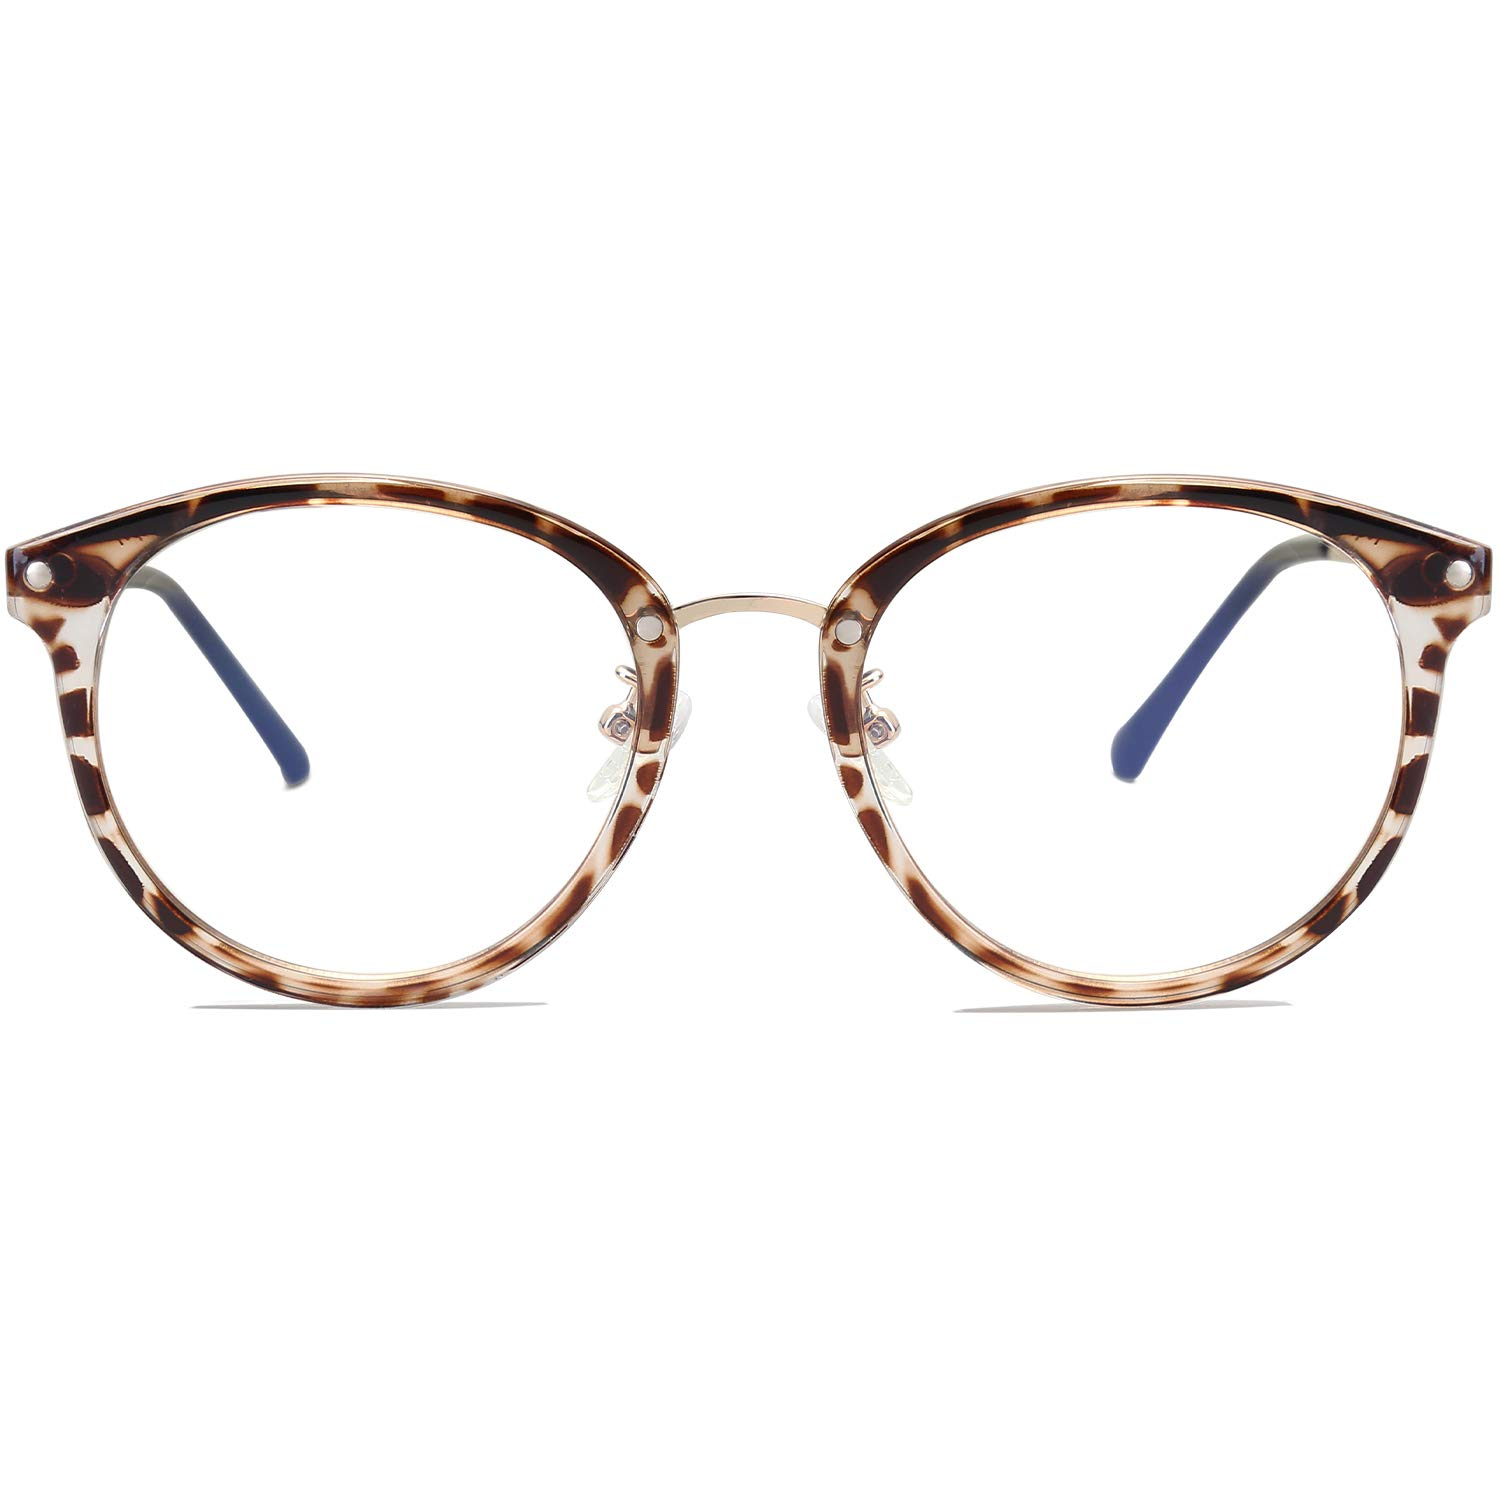 6025e680749d Amazon.com: VANLINKER Clear Lens Eyeglasses Anti Blue Light Computer  Reading Glasses VL9001 C01 Leopard Print Frame/Anti-Blue Light Lens: Health  & Personal ...